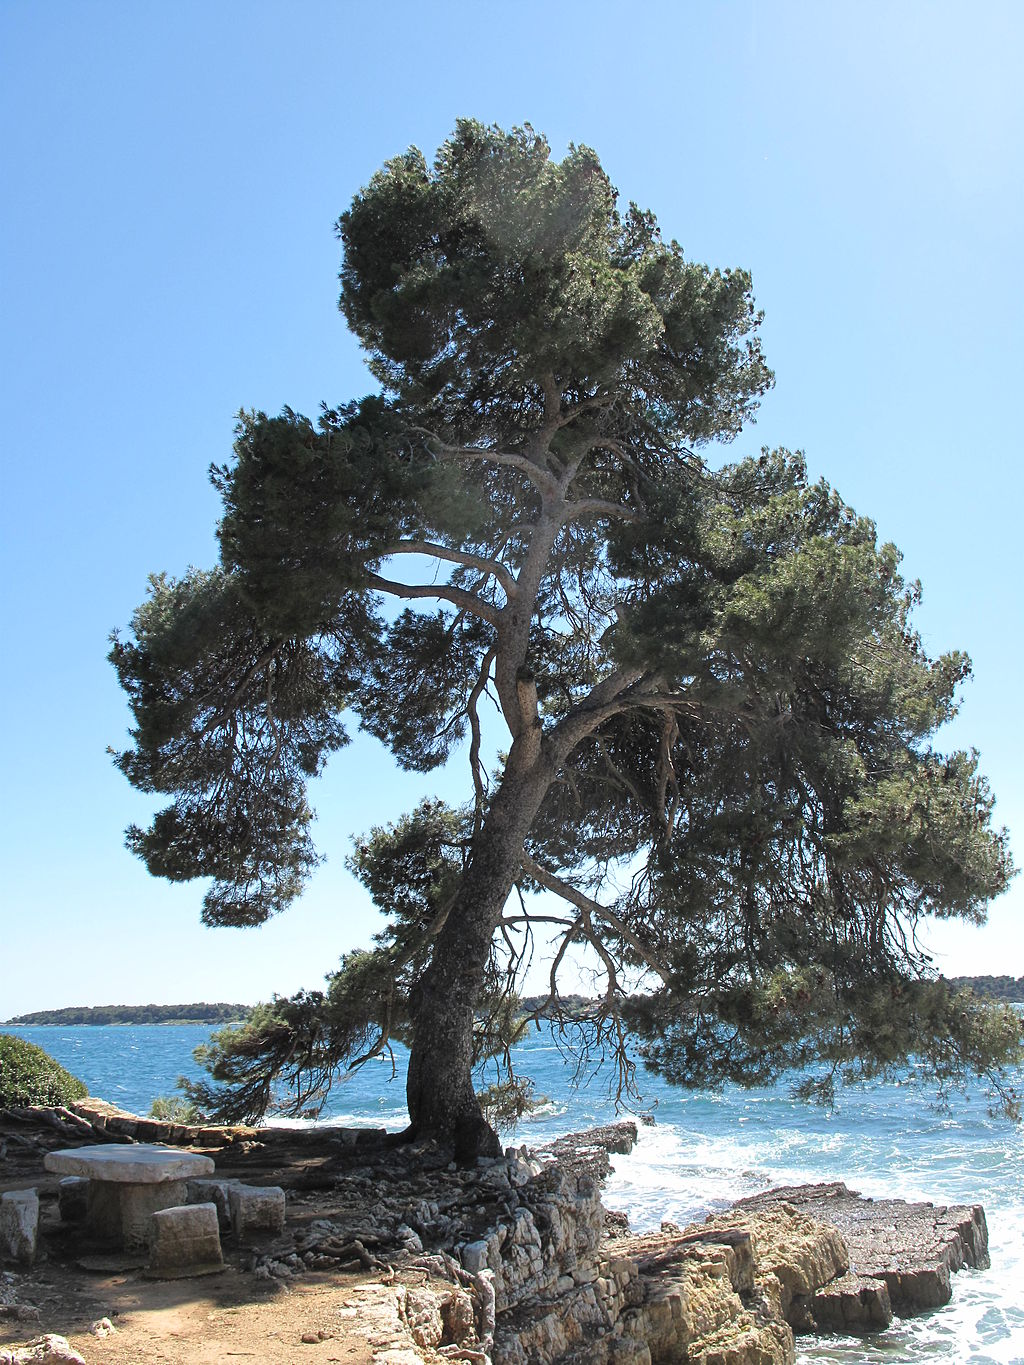 The research that follows is all on the branded & patented pine bark extract called Pycnogenol, which is derived from French Maritime pine trees, like this one. By Tangopaso (Own work) [Public domain], via Wikimedia Commons